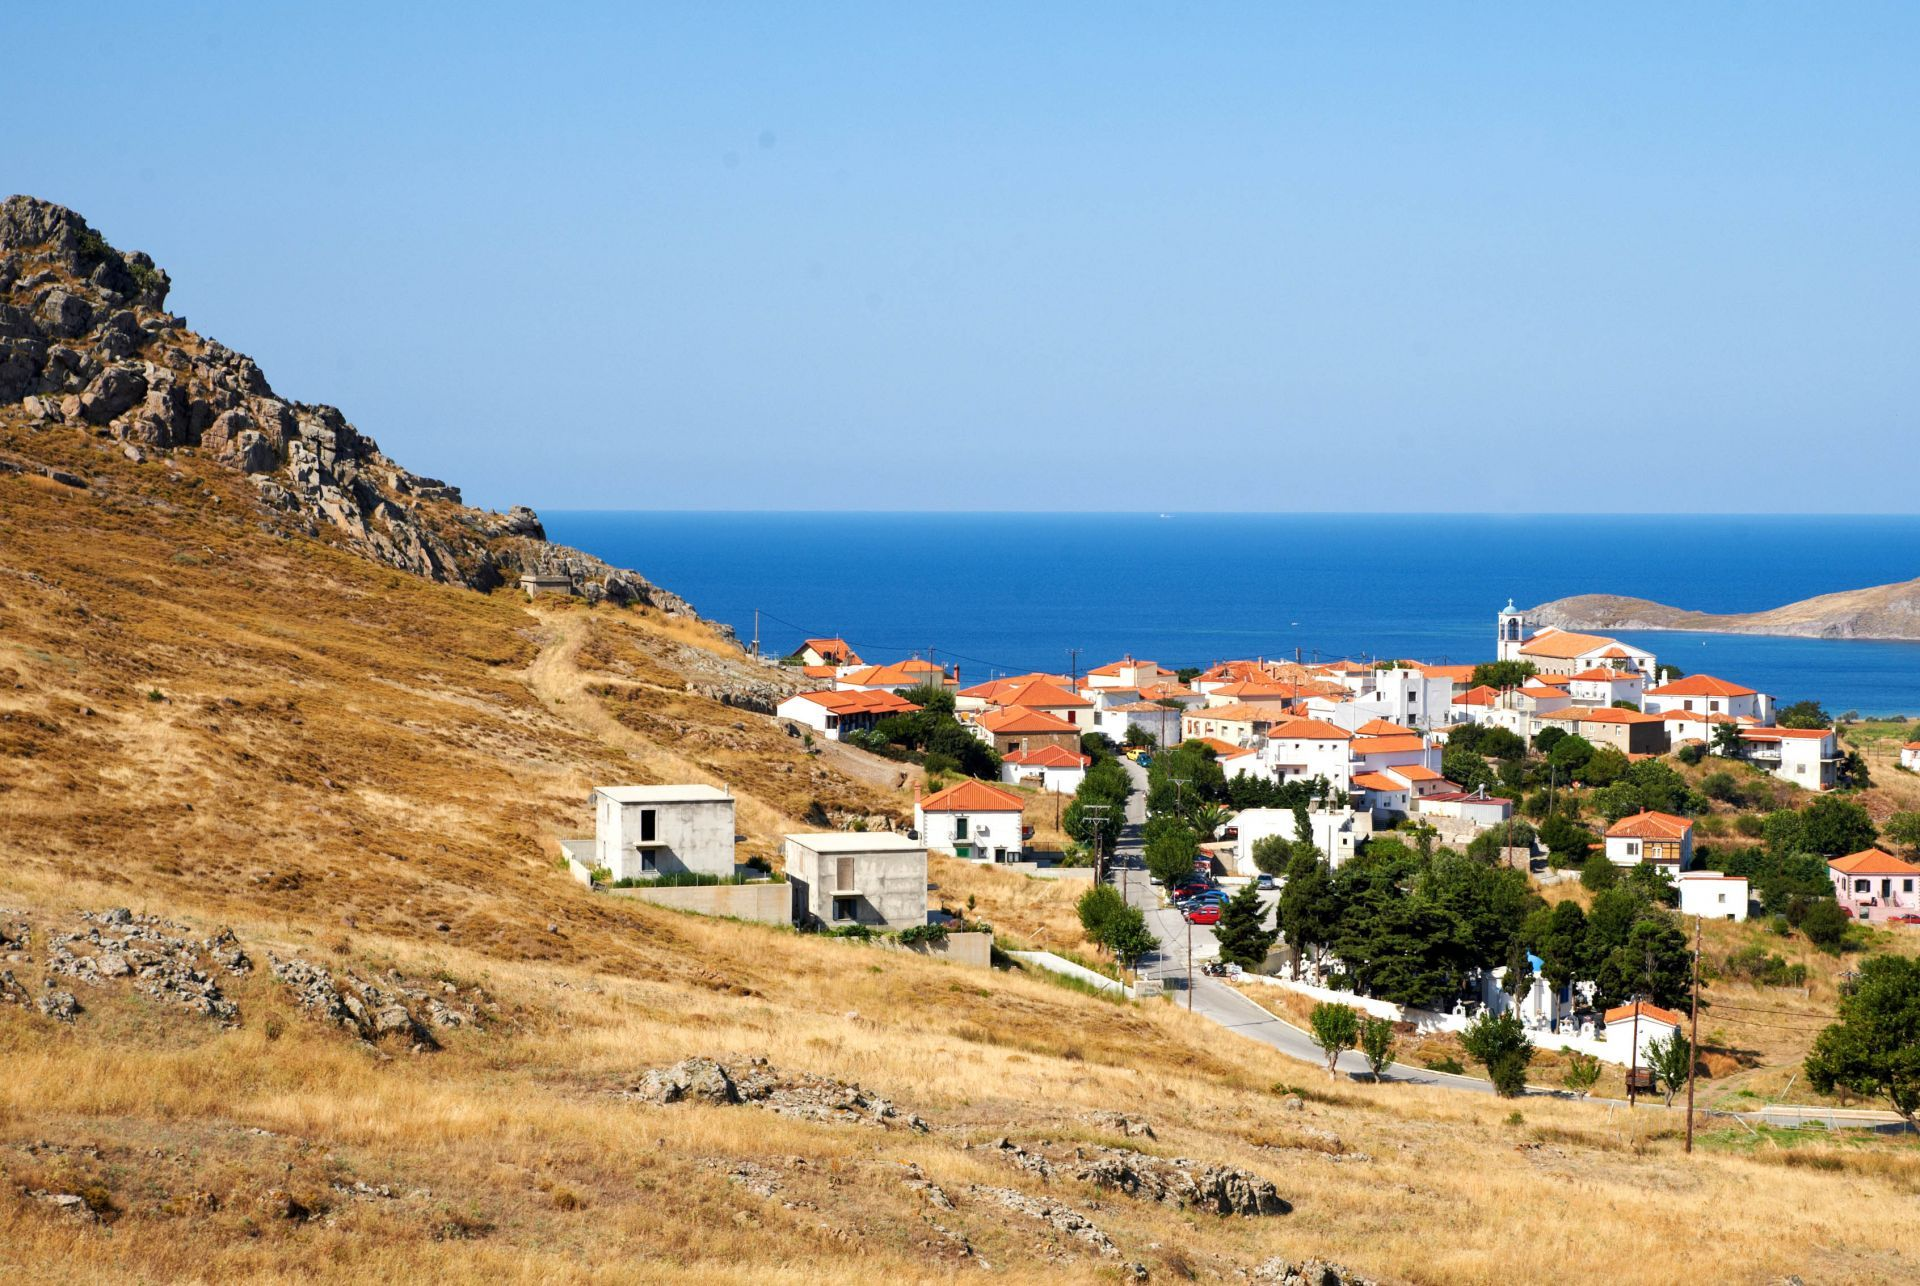 Accommodation and hotels in Lemnos